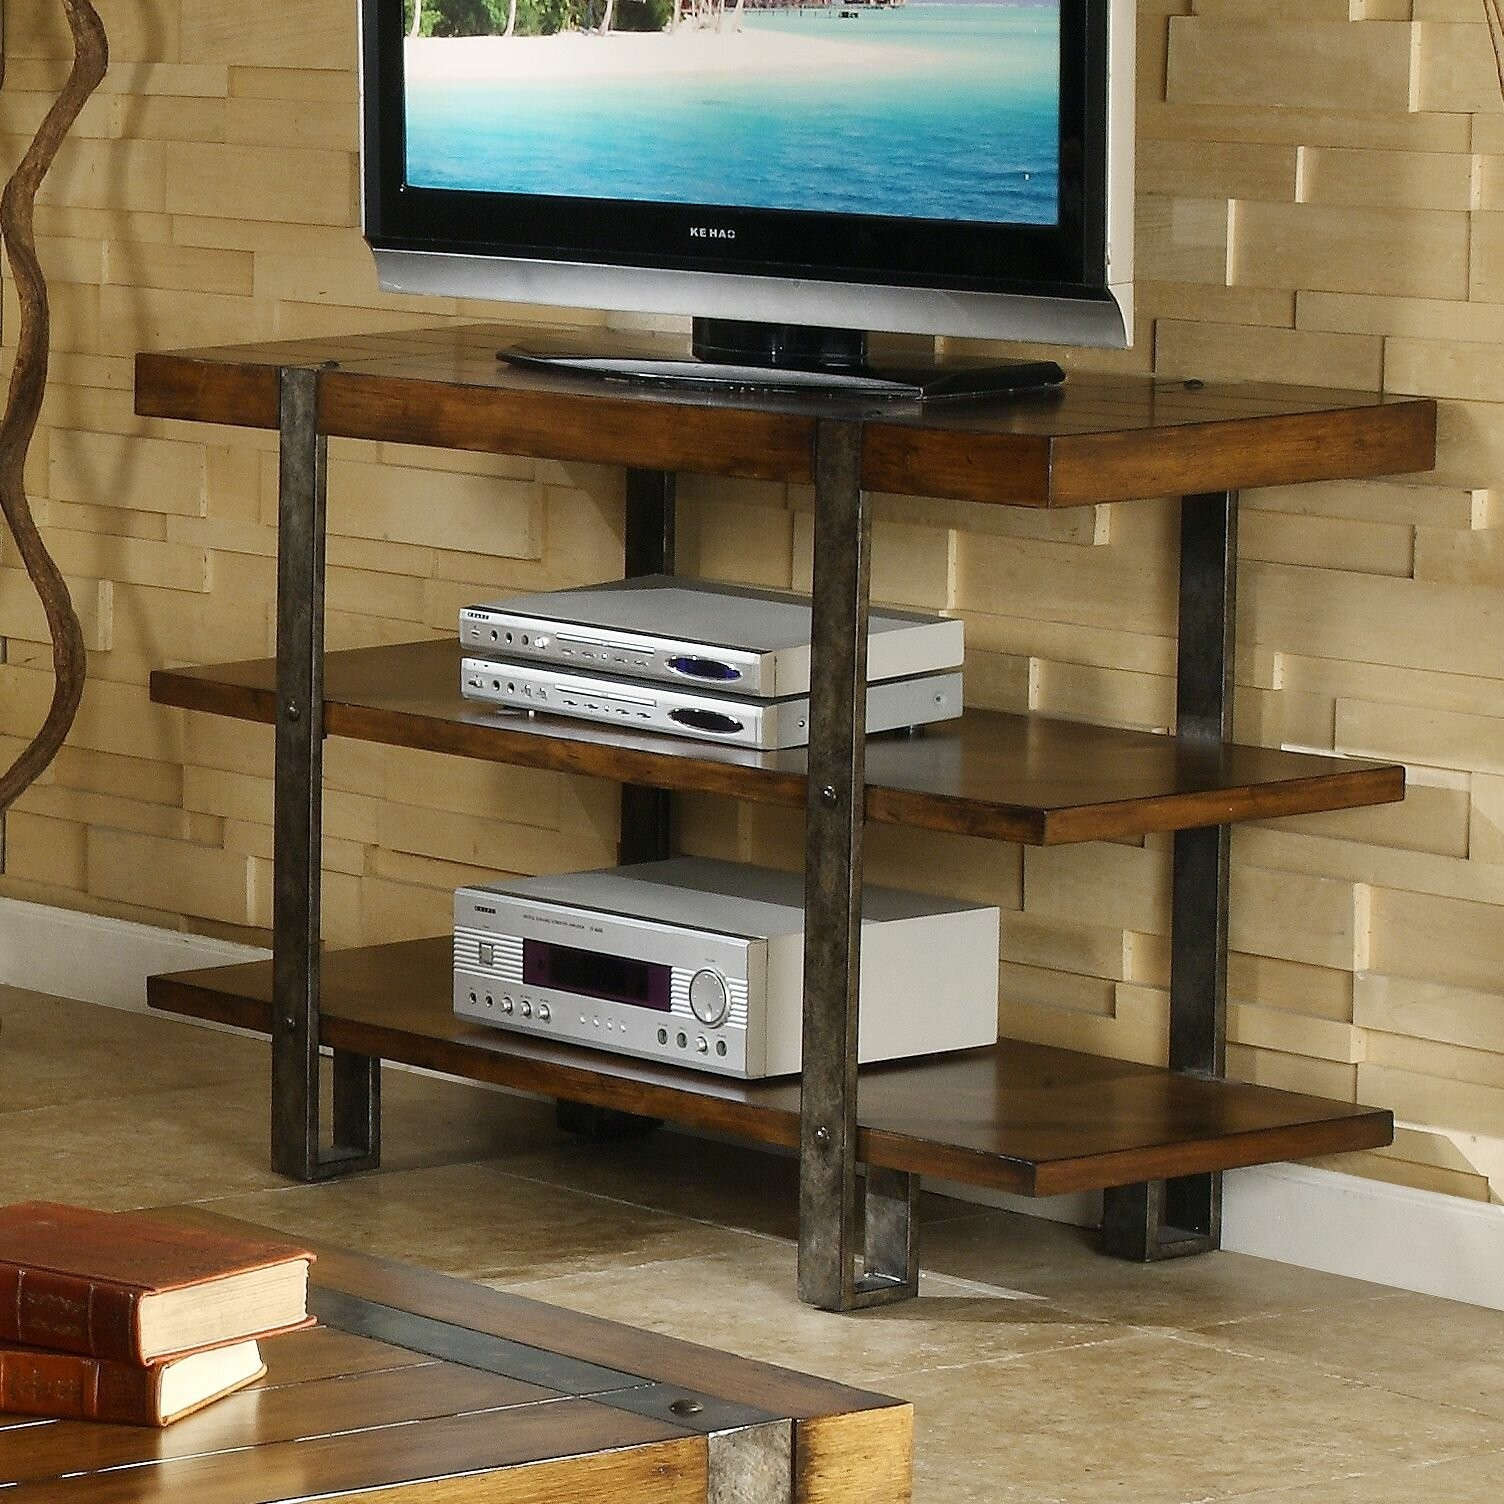 Rustic Wood And Metal Tv Stand Entertainment Center Shelf Console Table Decor